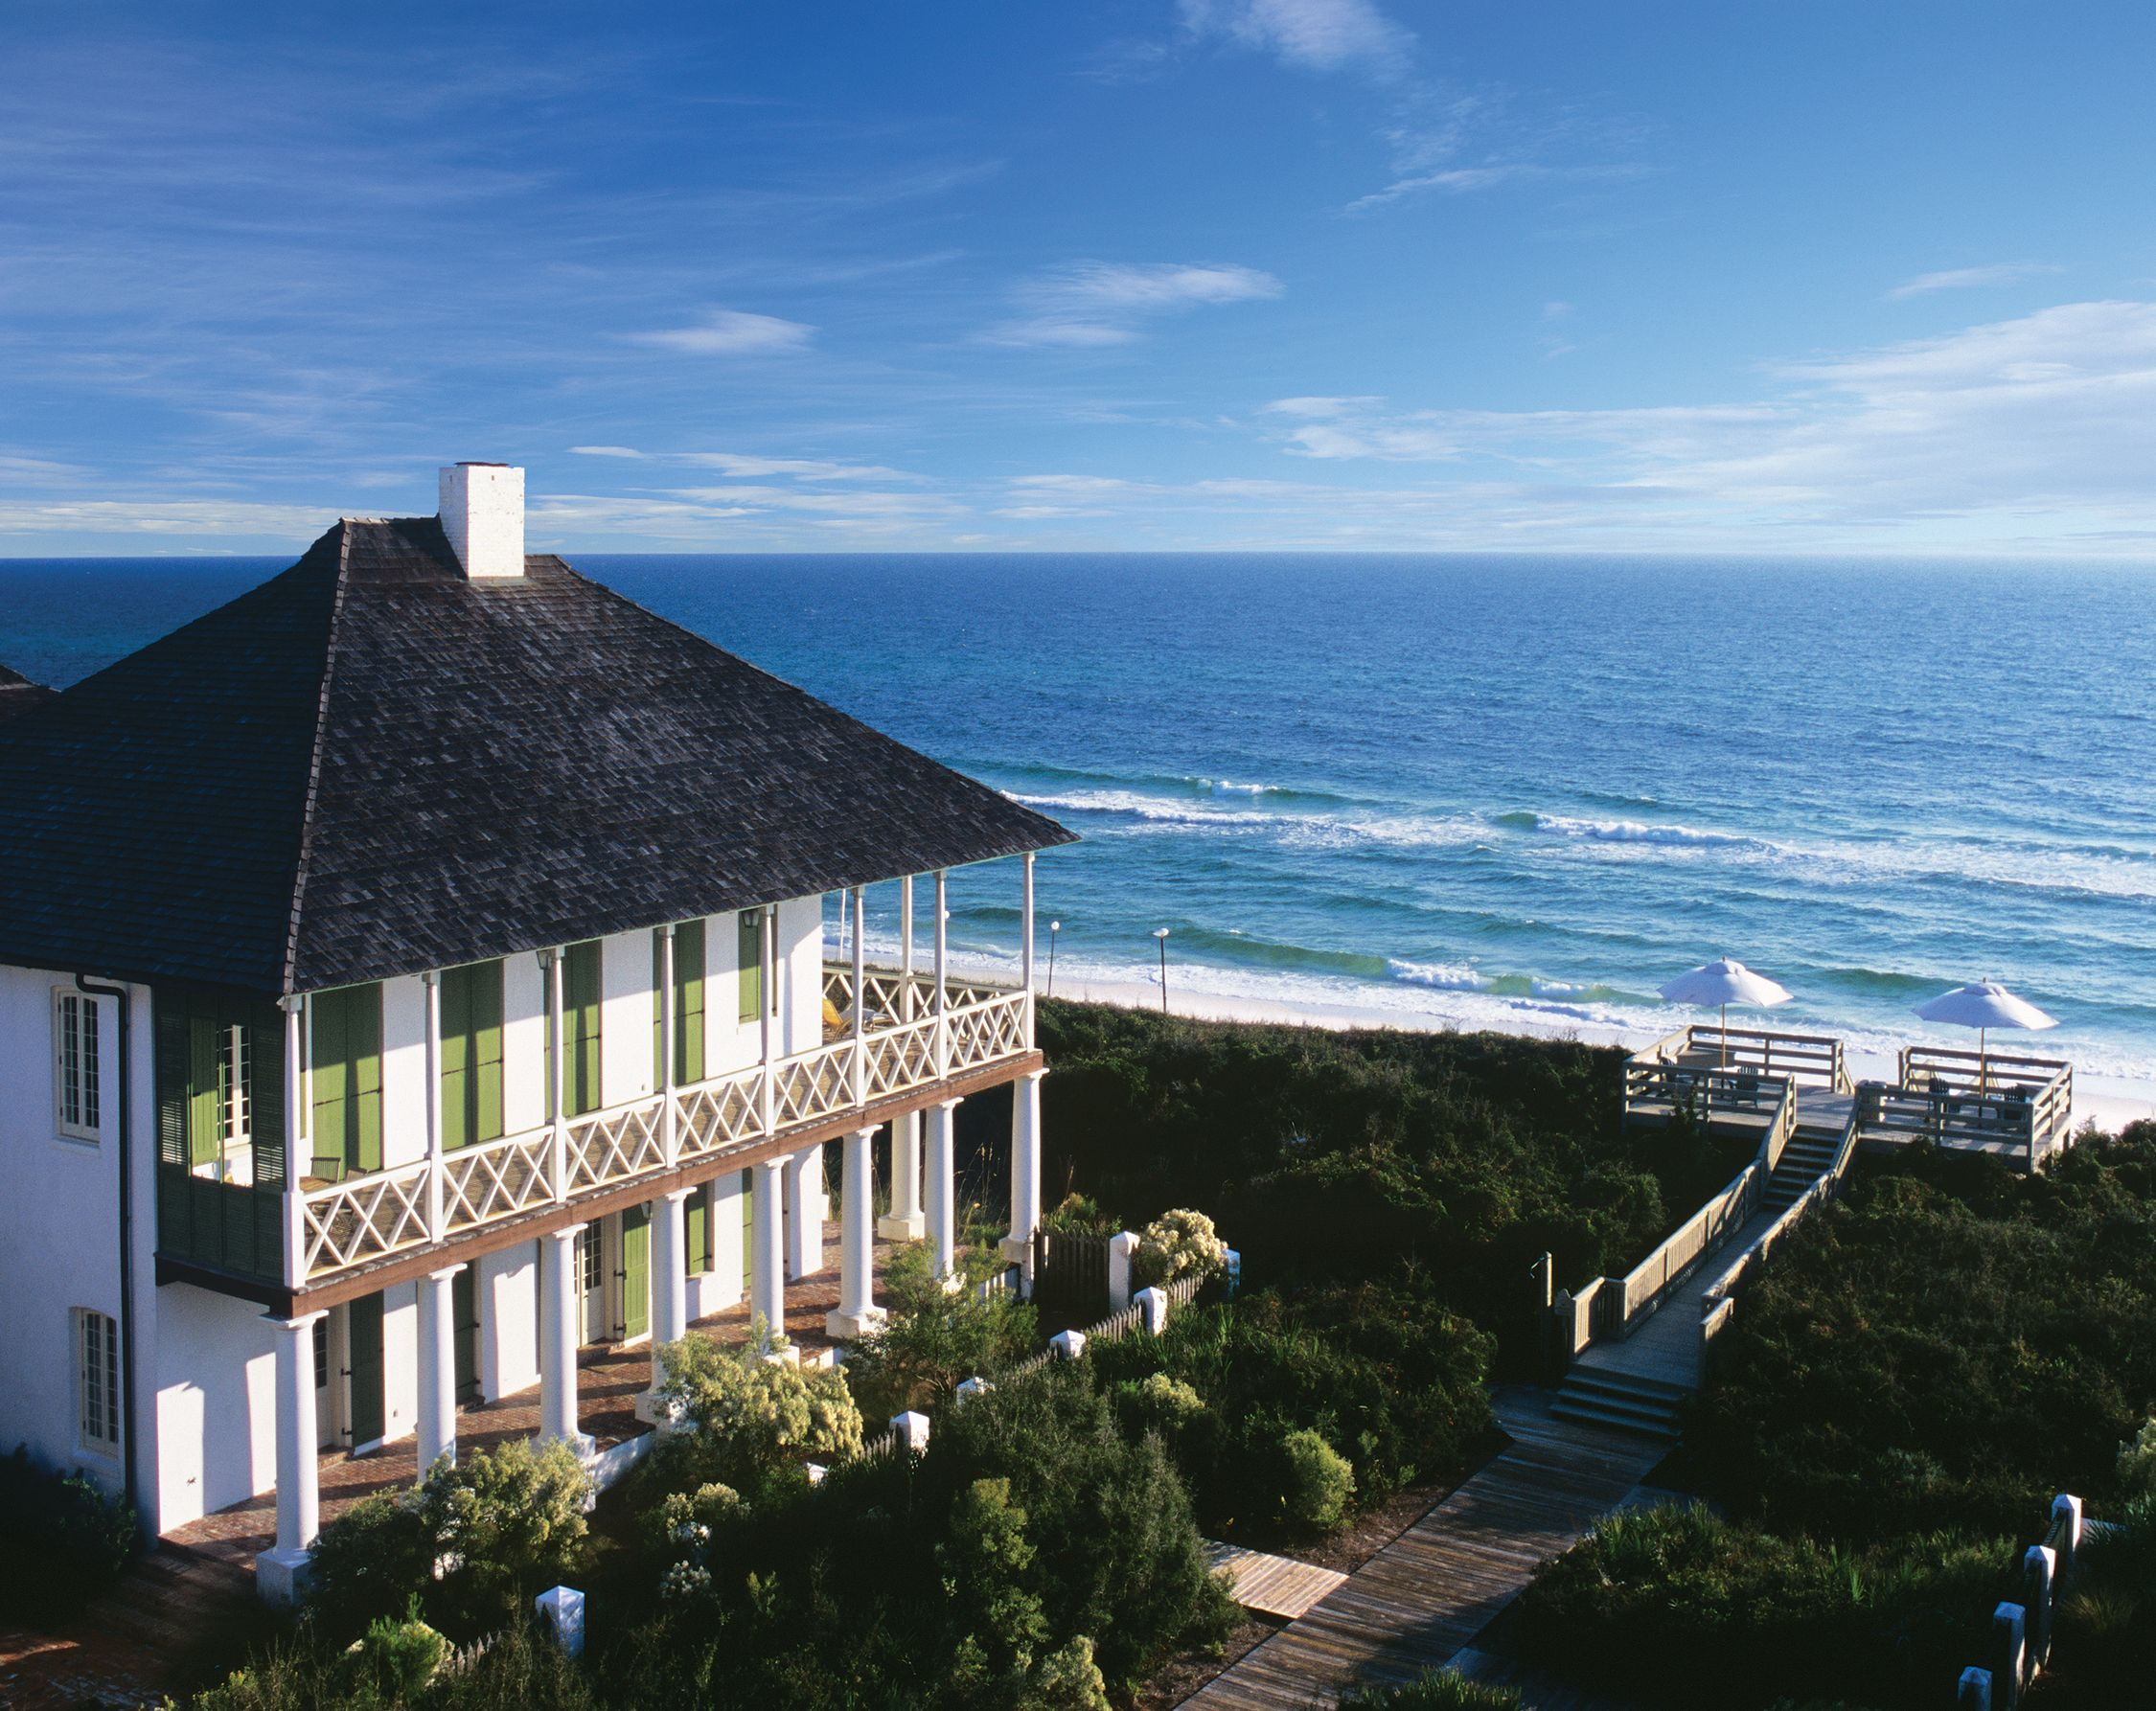 pitot cottage in rosemary beach florida beach house pinterest pitot cottage in rosemary beach florida